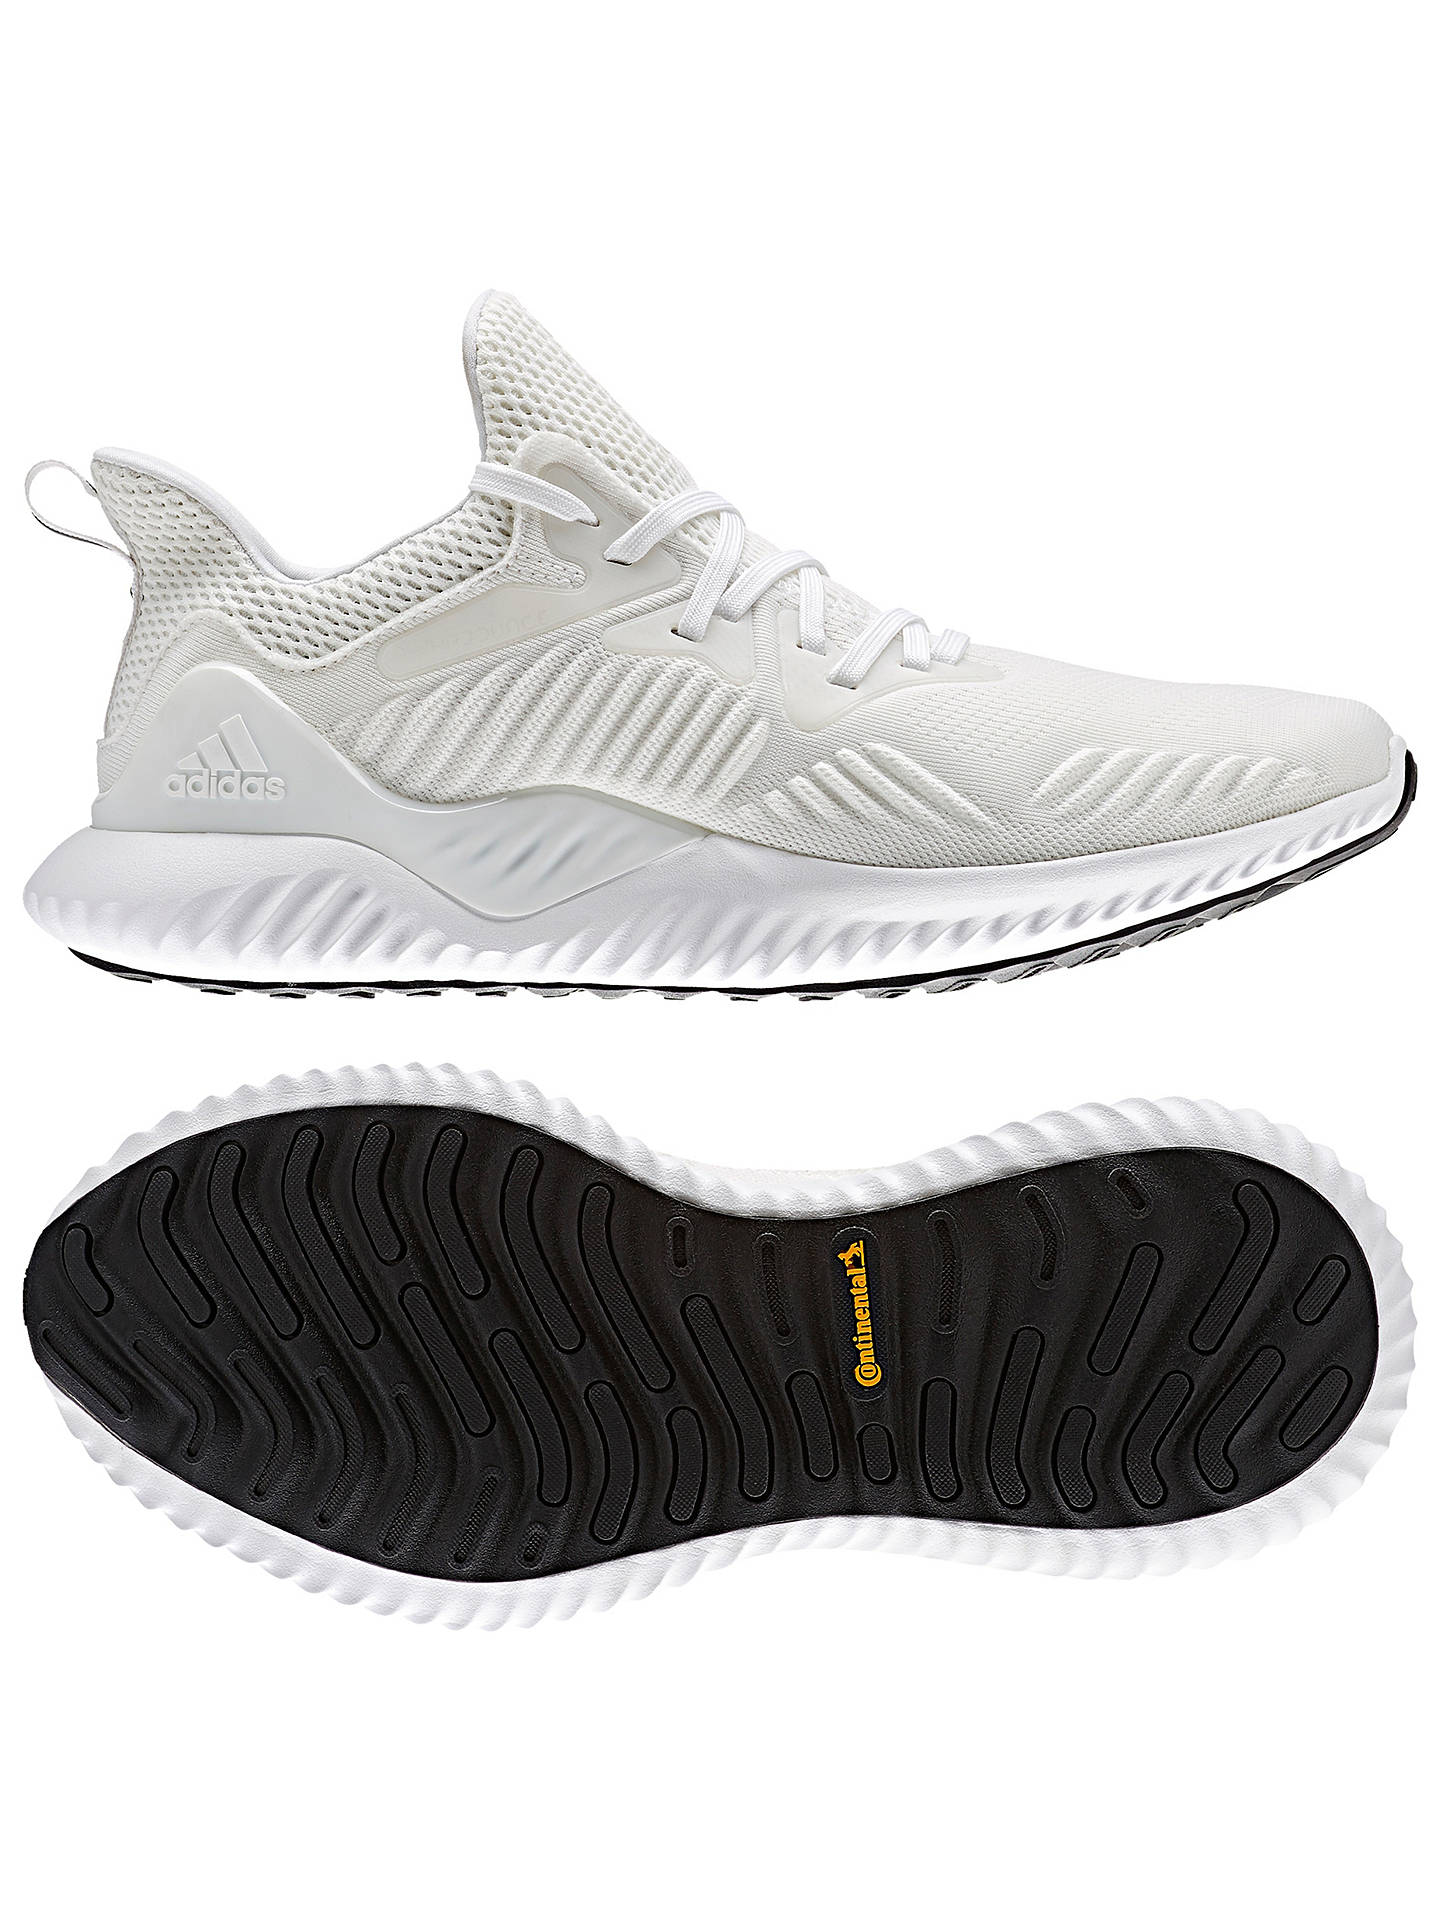 Buy adidas Alphabounce Beyond Men's Running Shoes, White/Silver, 7 Online at johnlewis.com